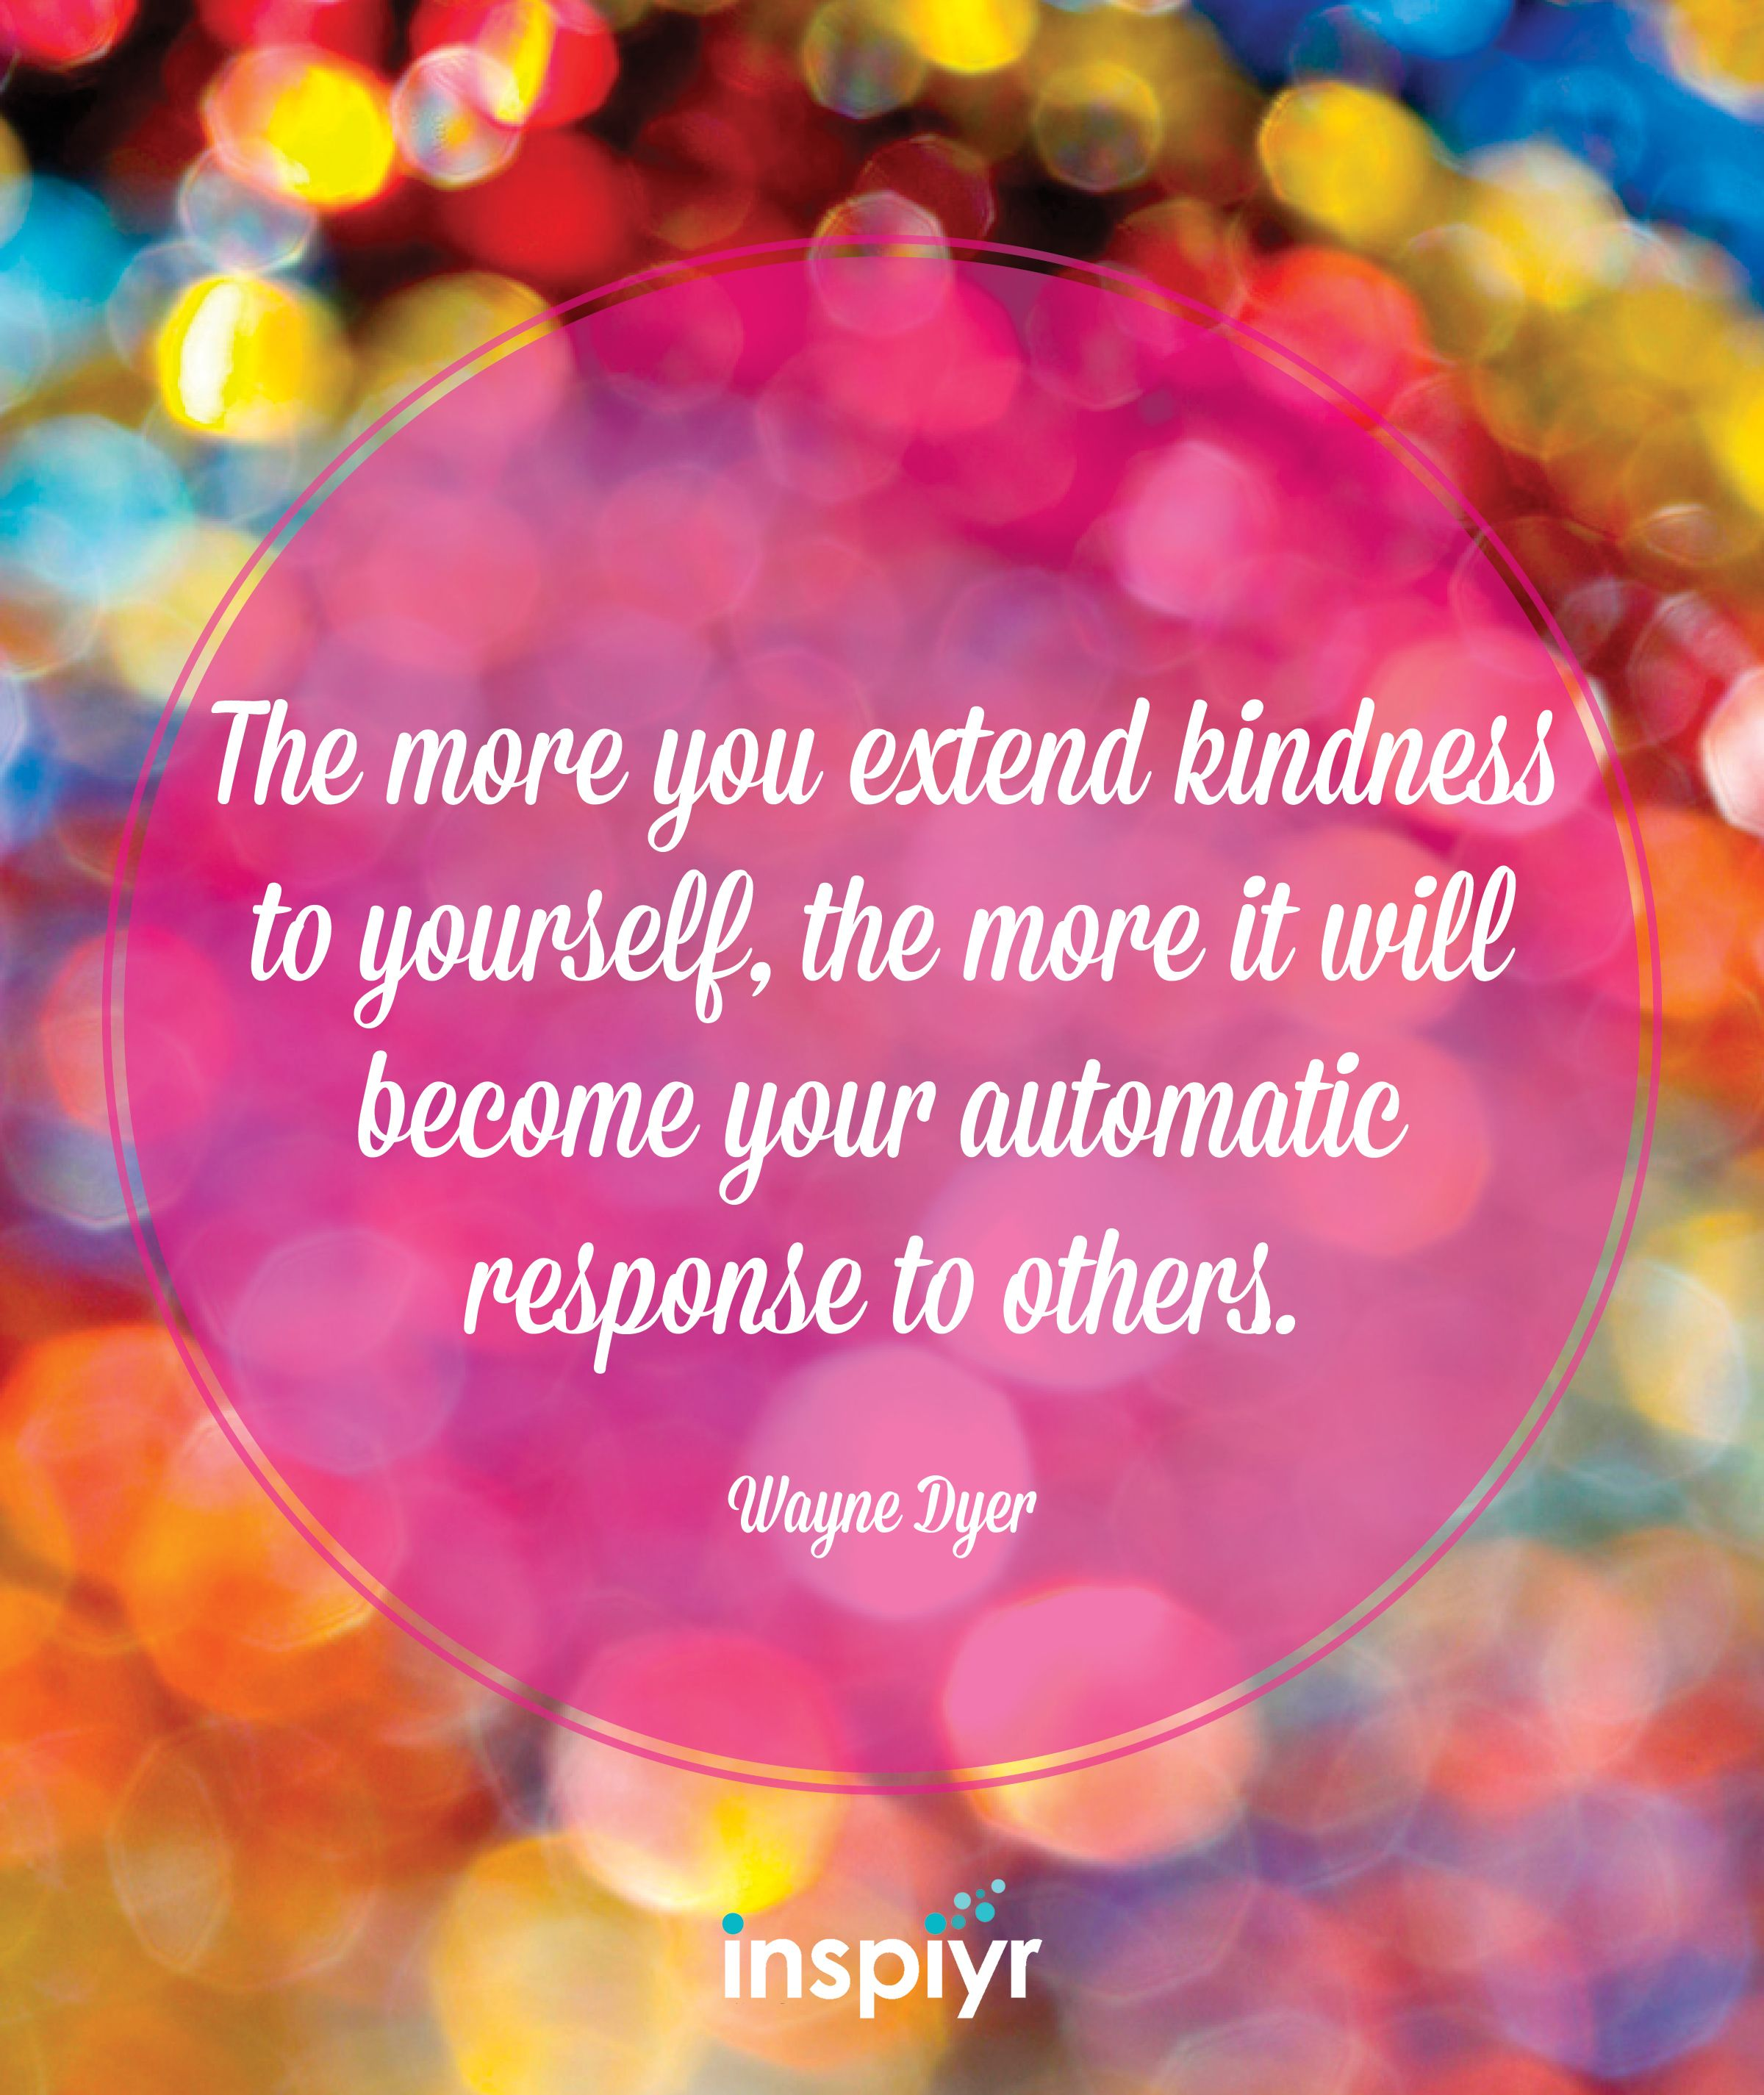 The More You Extend Kindness To Yourself The More It Will Become